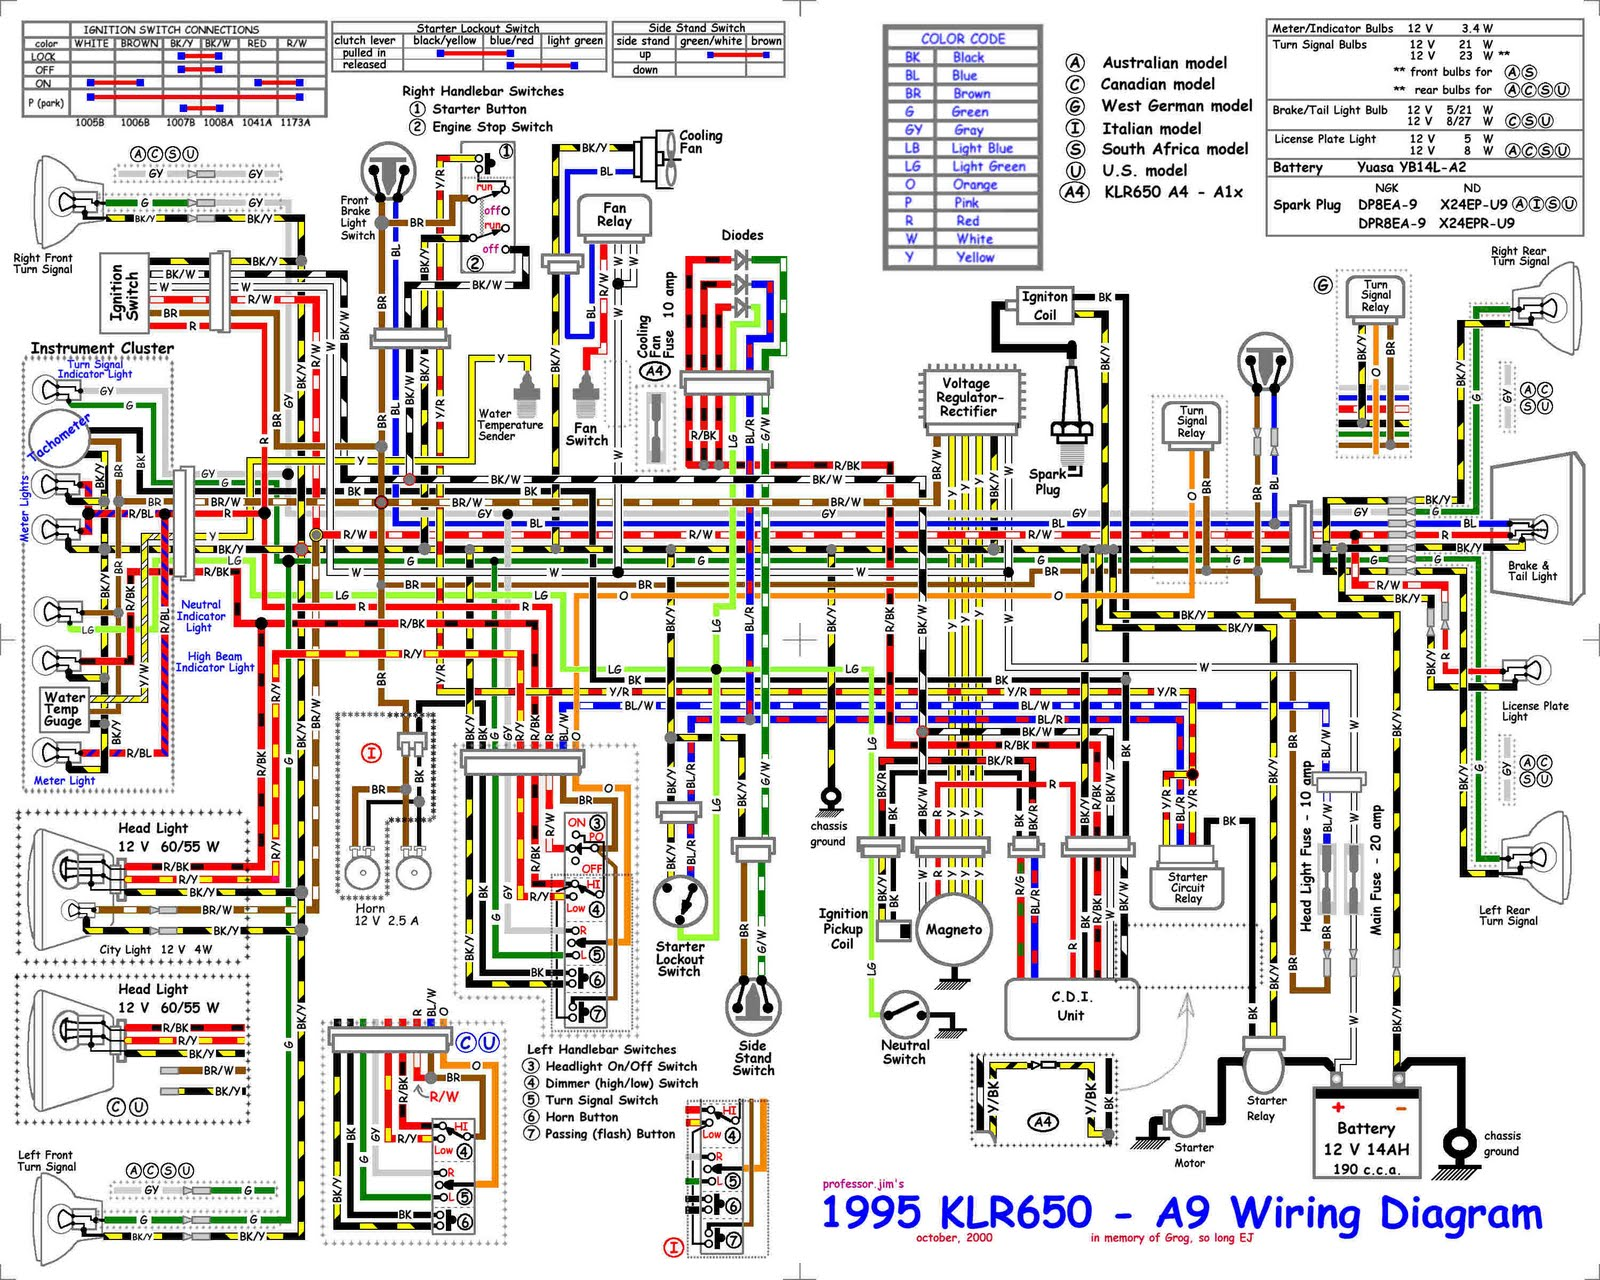 1974 monte carlo wiring diagram free auto wiring diagram 1974 chevrolet monte carlo wiring diagram auto wiring diagrams at reclaimingppi.co